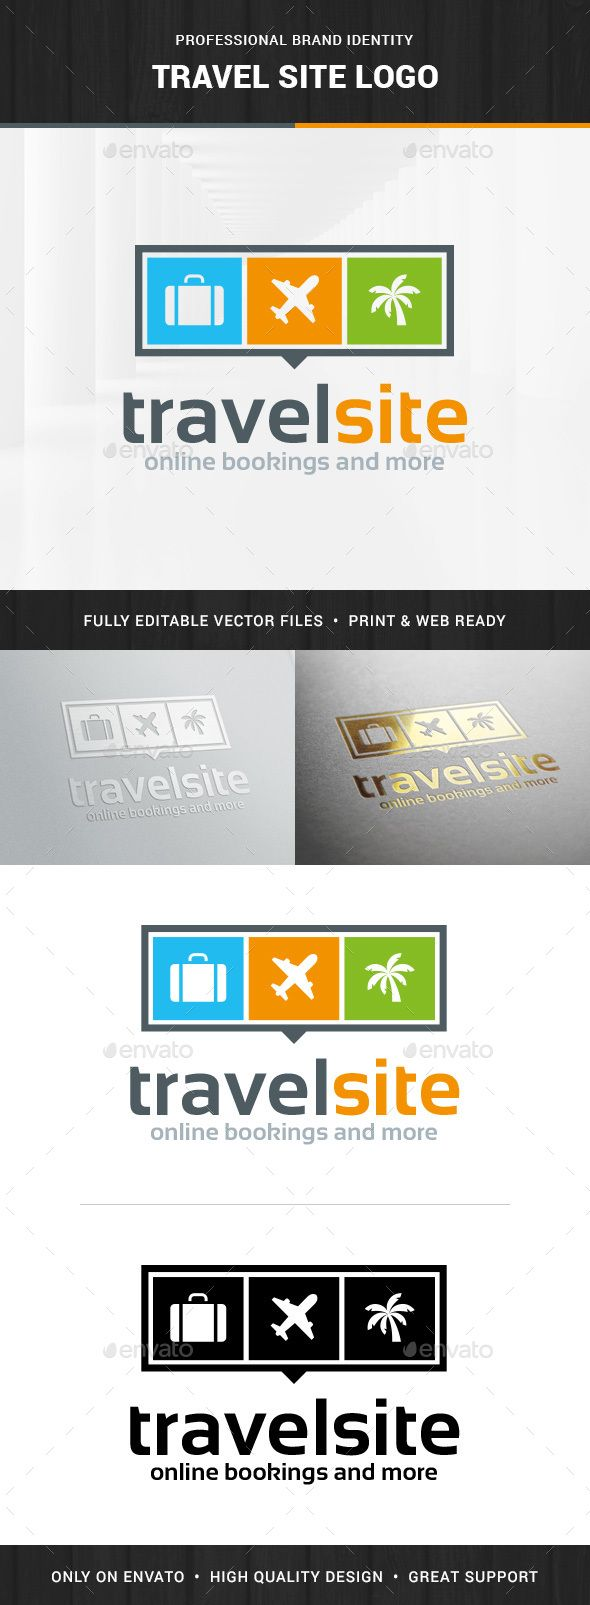 Travel Site Logo Template — Vector EPS #vector #travel • Available here → https://graphicriver.net/item/travel-site-logo-template/14211564?ref=pxcr